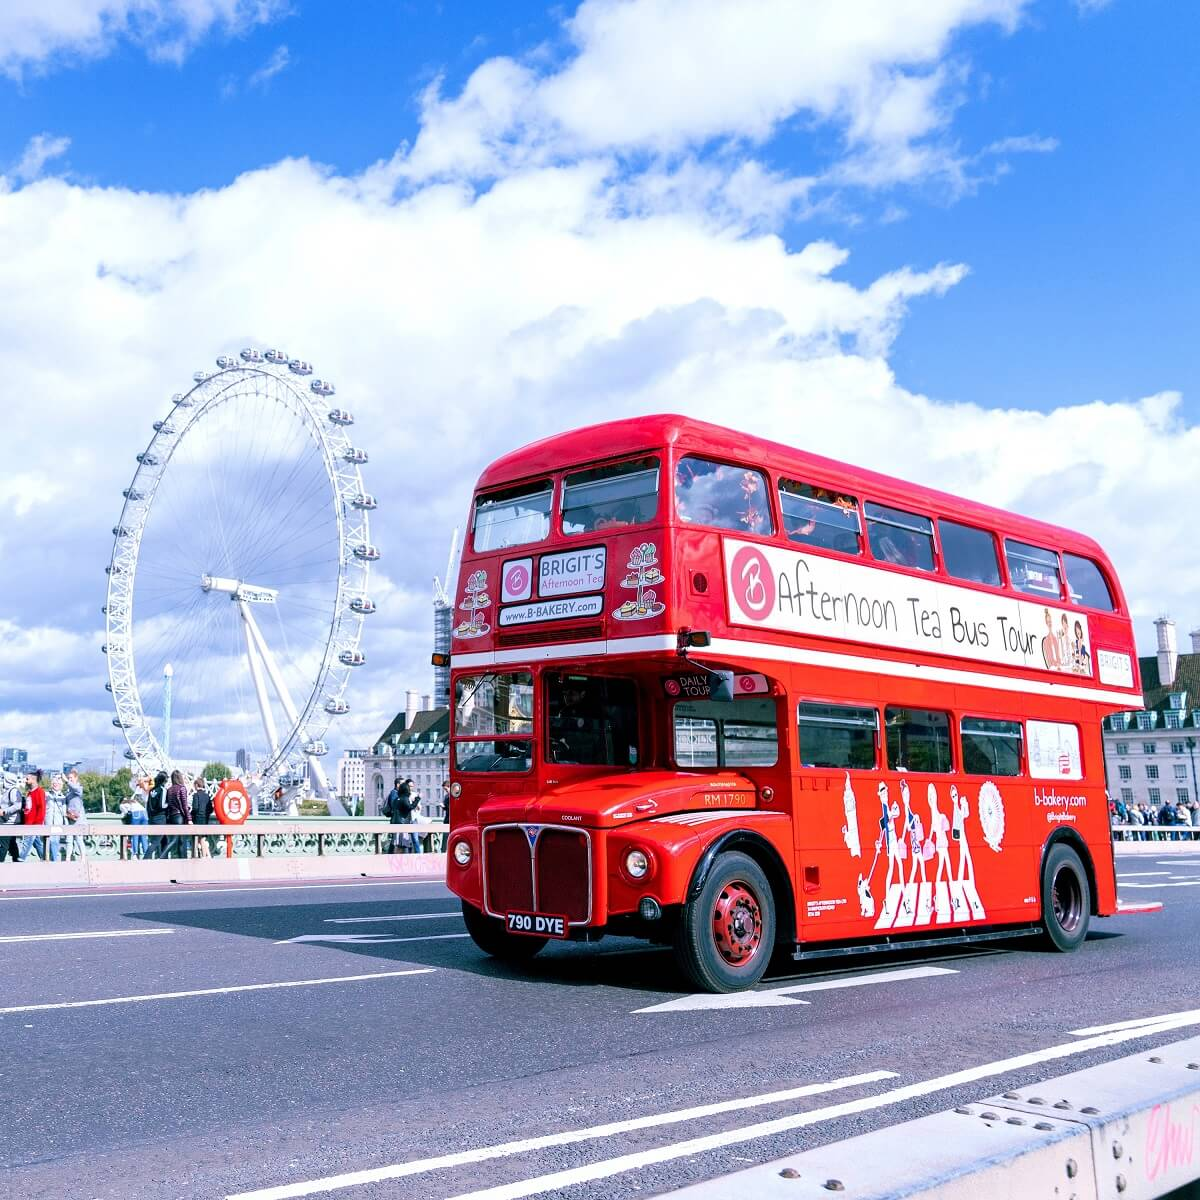 , Iconic red Routemaster bus to feature at WTM London 2019, Buzz travel | eTurboNews |Travel News